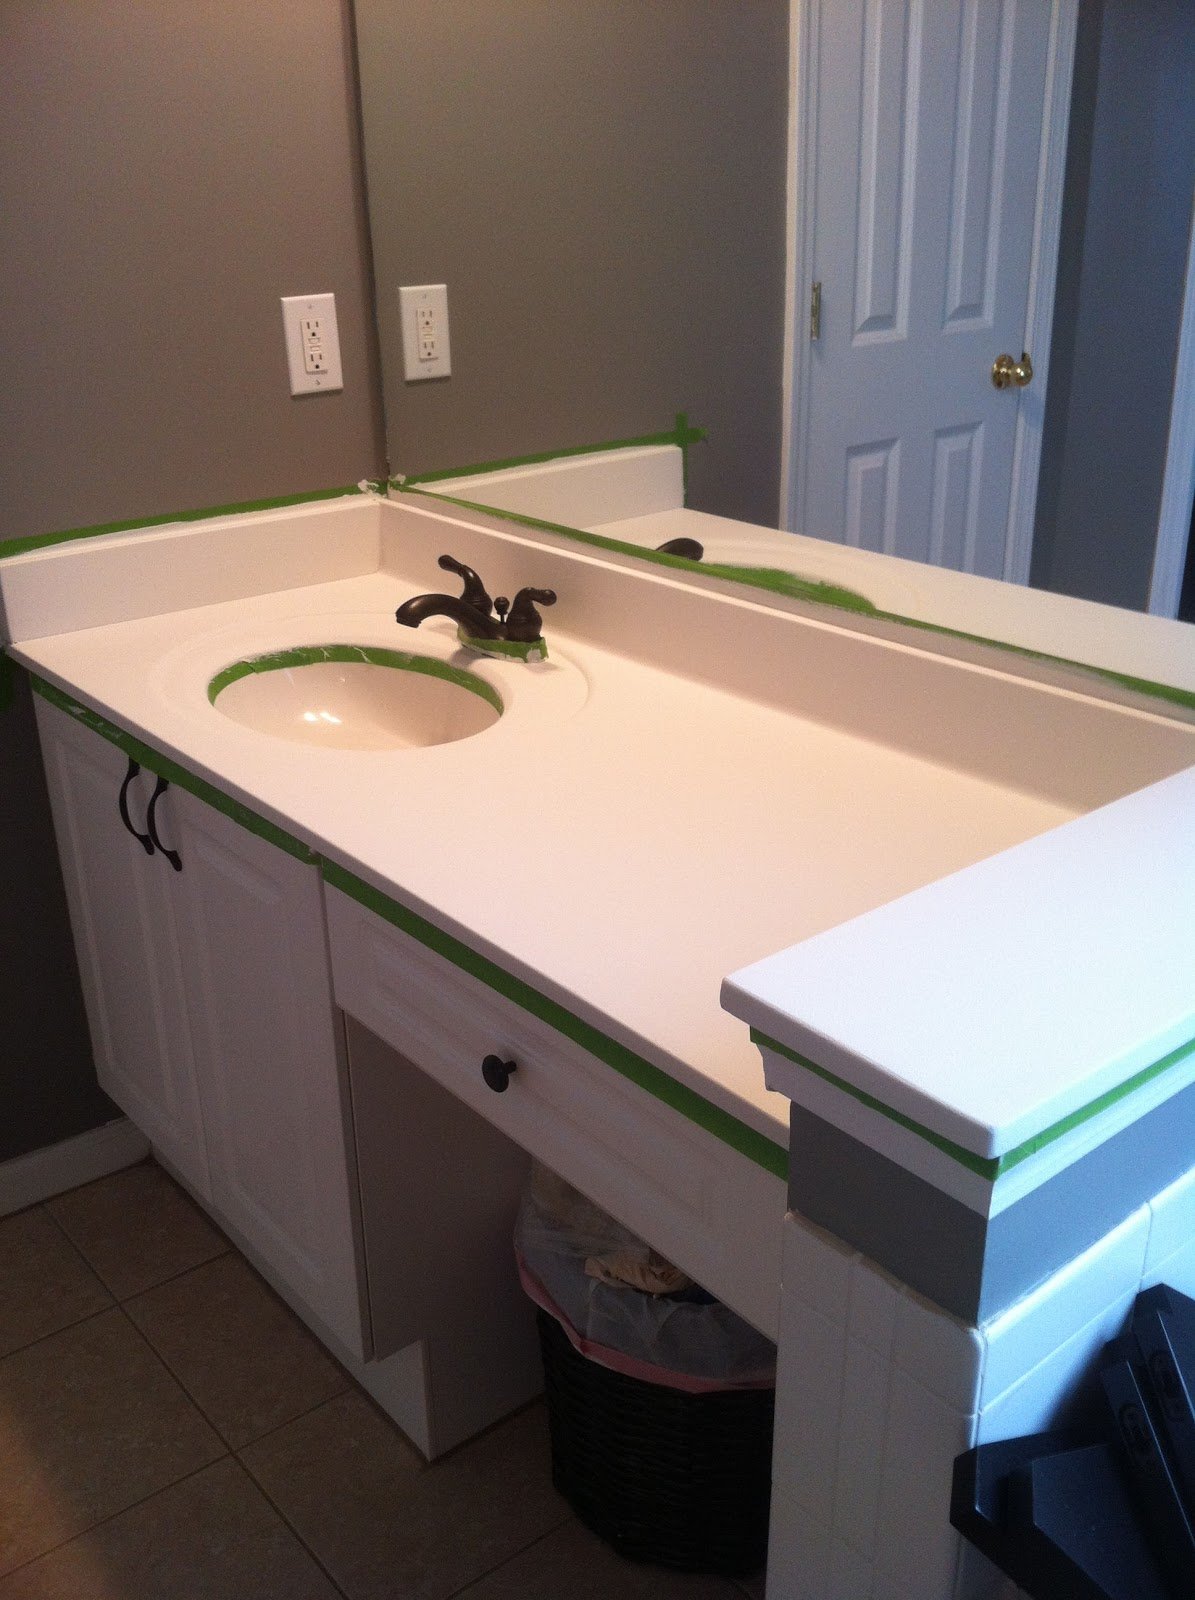 I Painted My Countertops And Lived To Tell The Tale ;)